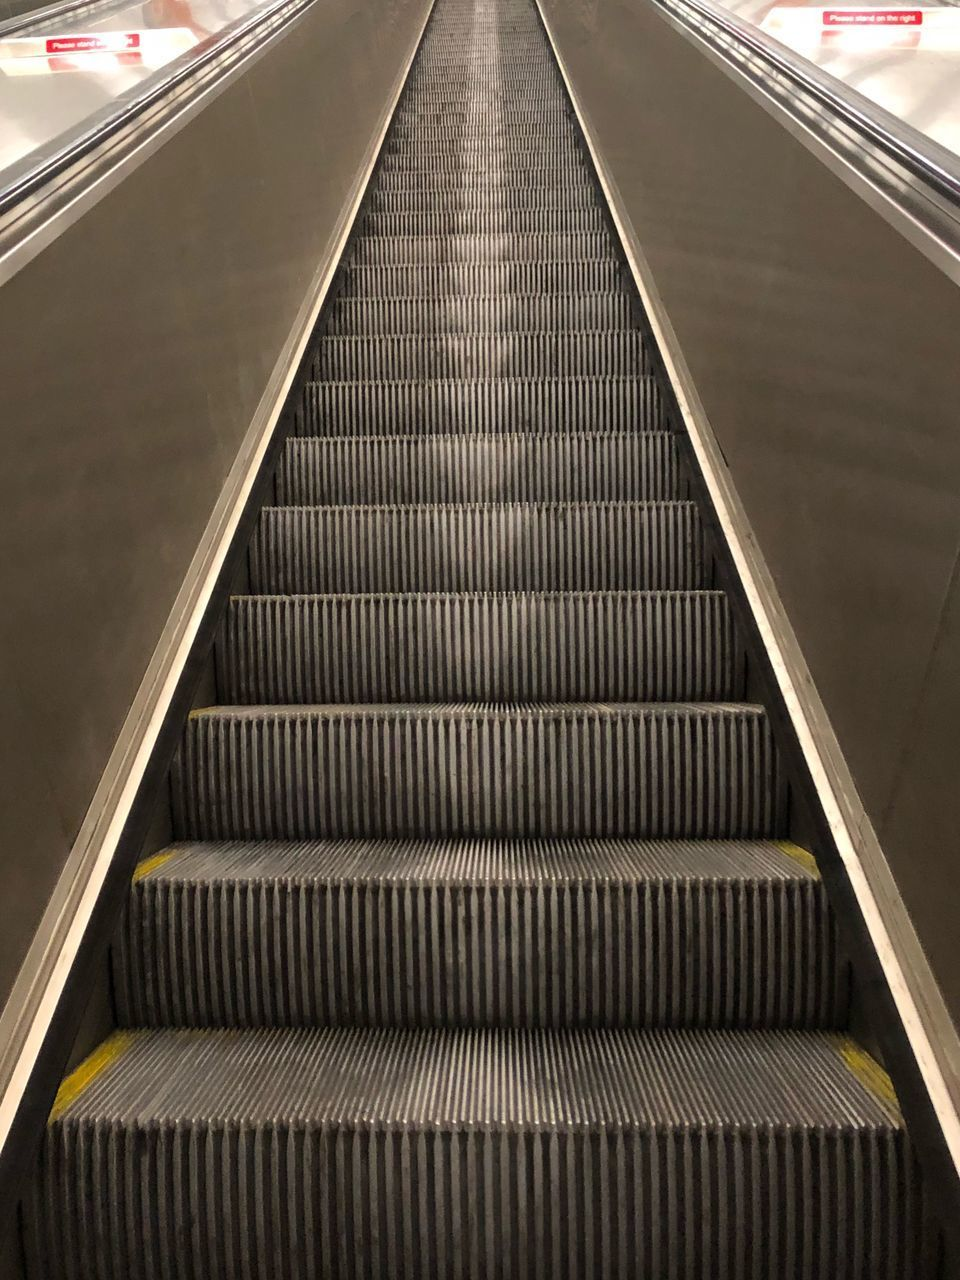 escalator, staircase, steps and staircases, steps, railing, moving up, transportation, modern, indoors, the way forward, convenience, technology, futuristic, subway station, direction, illuminated, built structure, station, architecture, subway train, no people, day, city, close-up